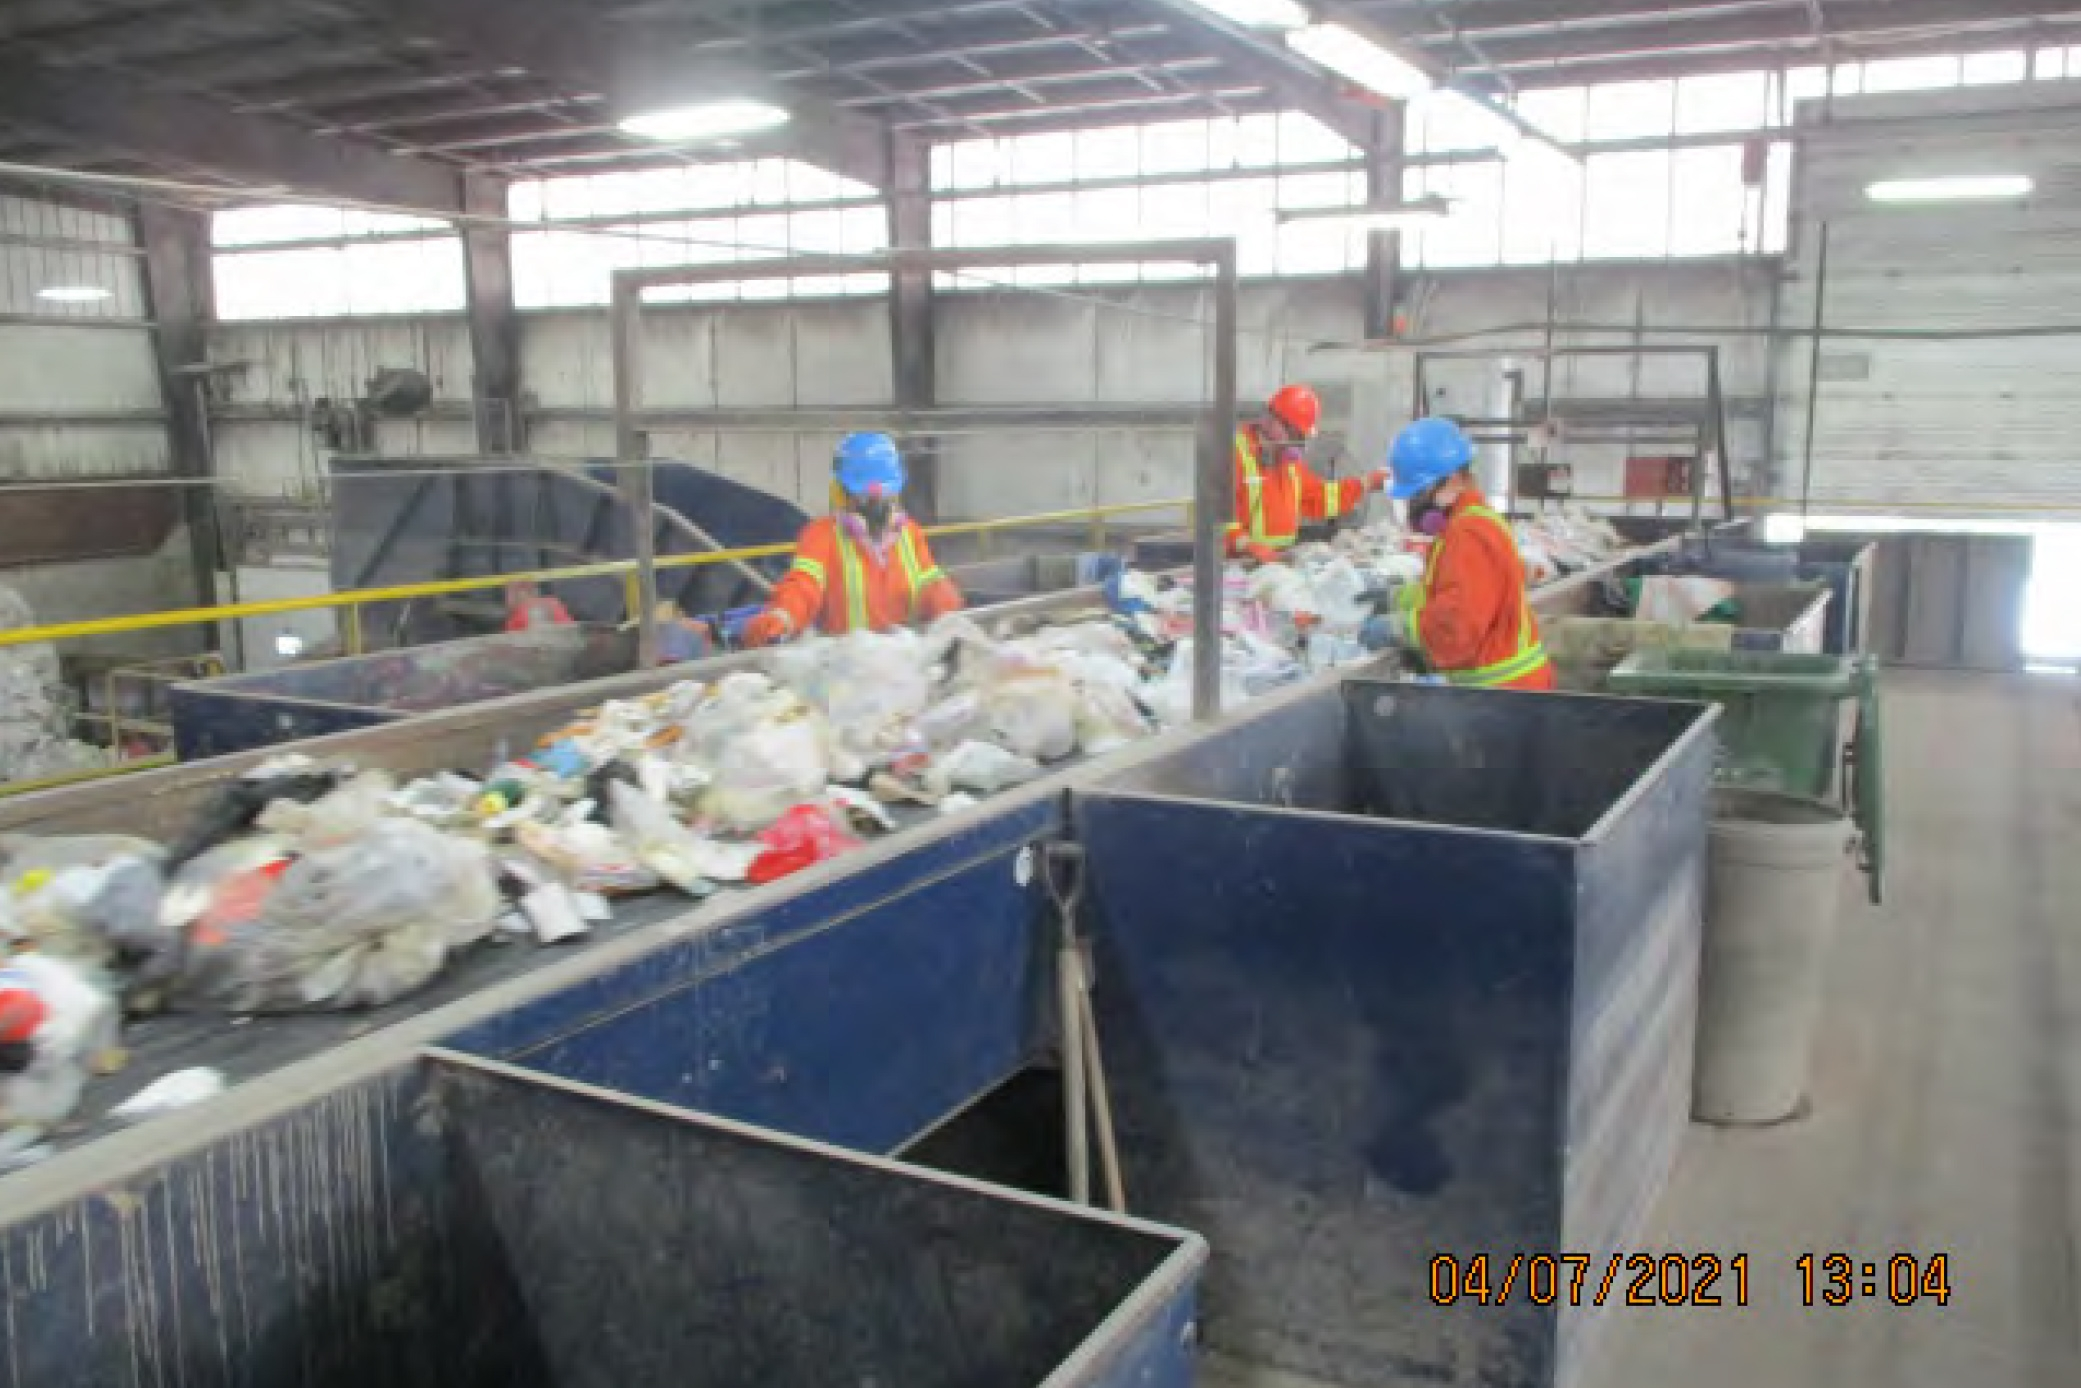 In a grainy photo, time-stamped April 7, 2021 at 13:04, three workers in orange high-visibility suits wearing hard hats and masks sort garbage on a conveyer belt.